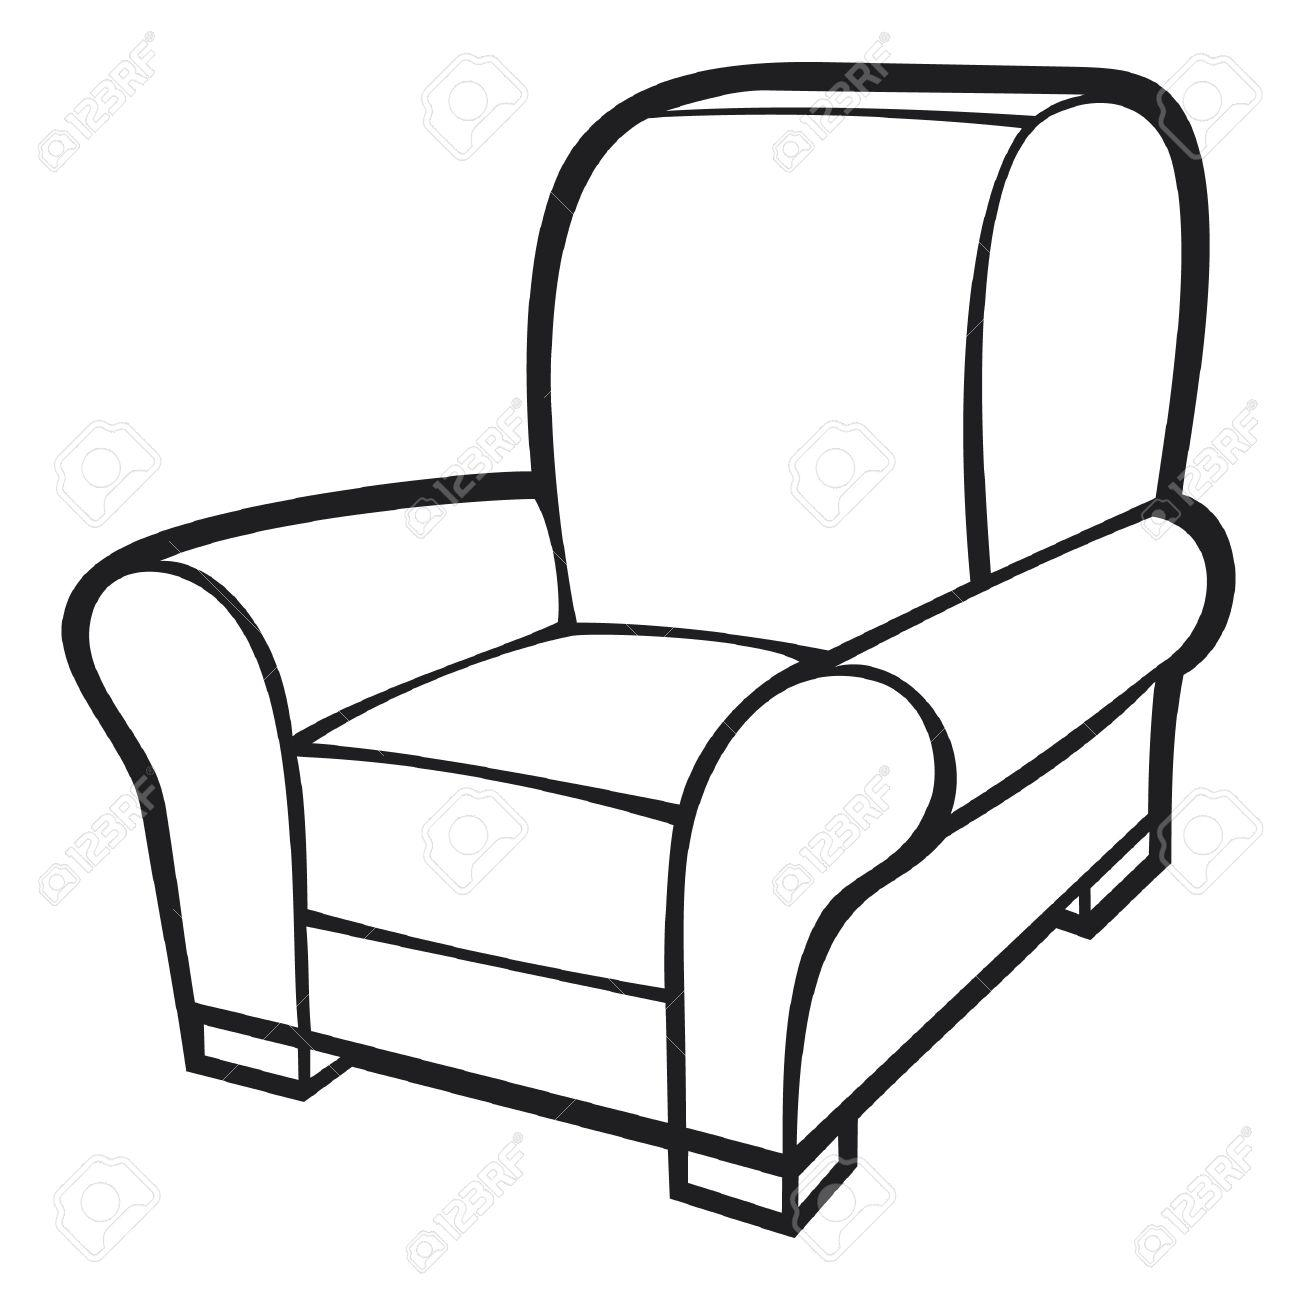 Chair black and white clipart 5 » Clipart Station.